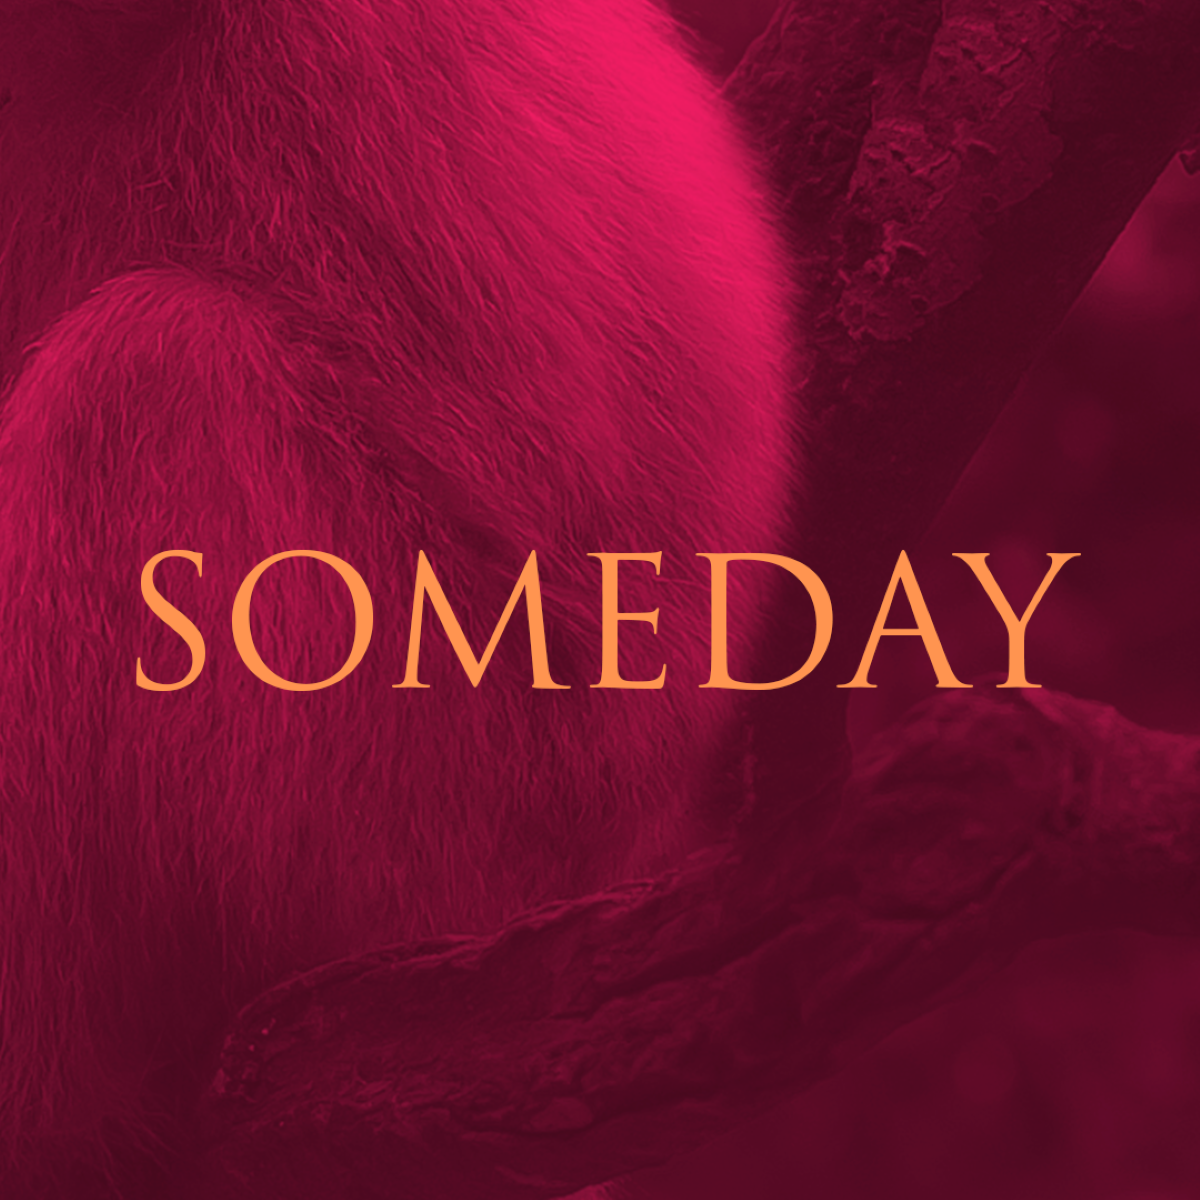 SOmeday artwork by DEATH MACHINE